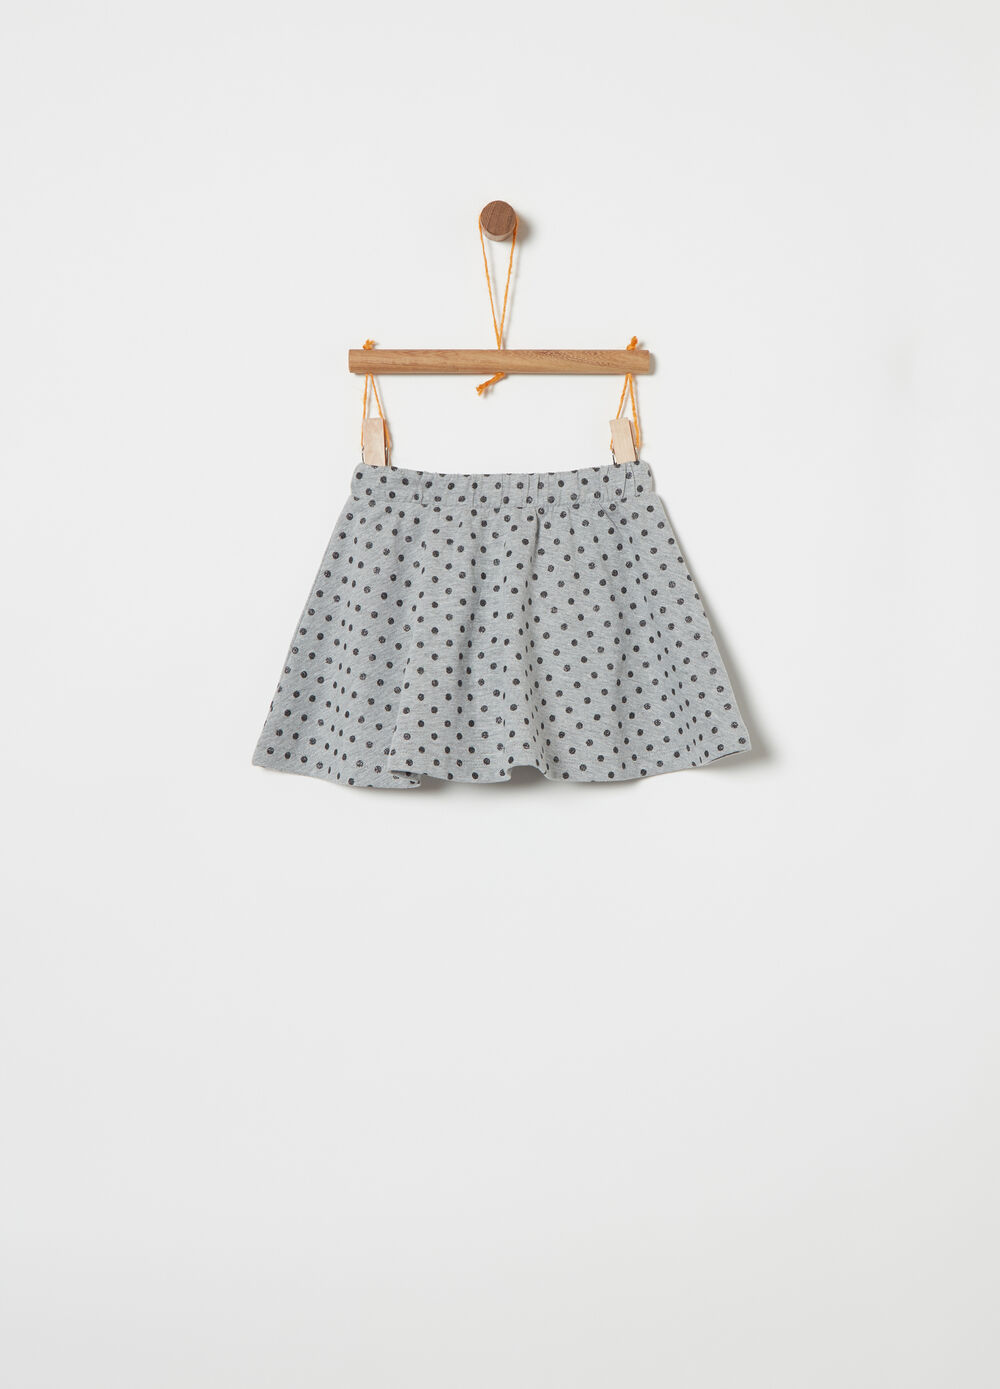 Lightweight fleece skirt with glitter polka dots